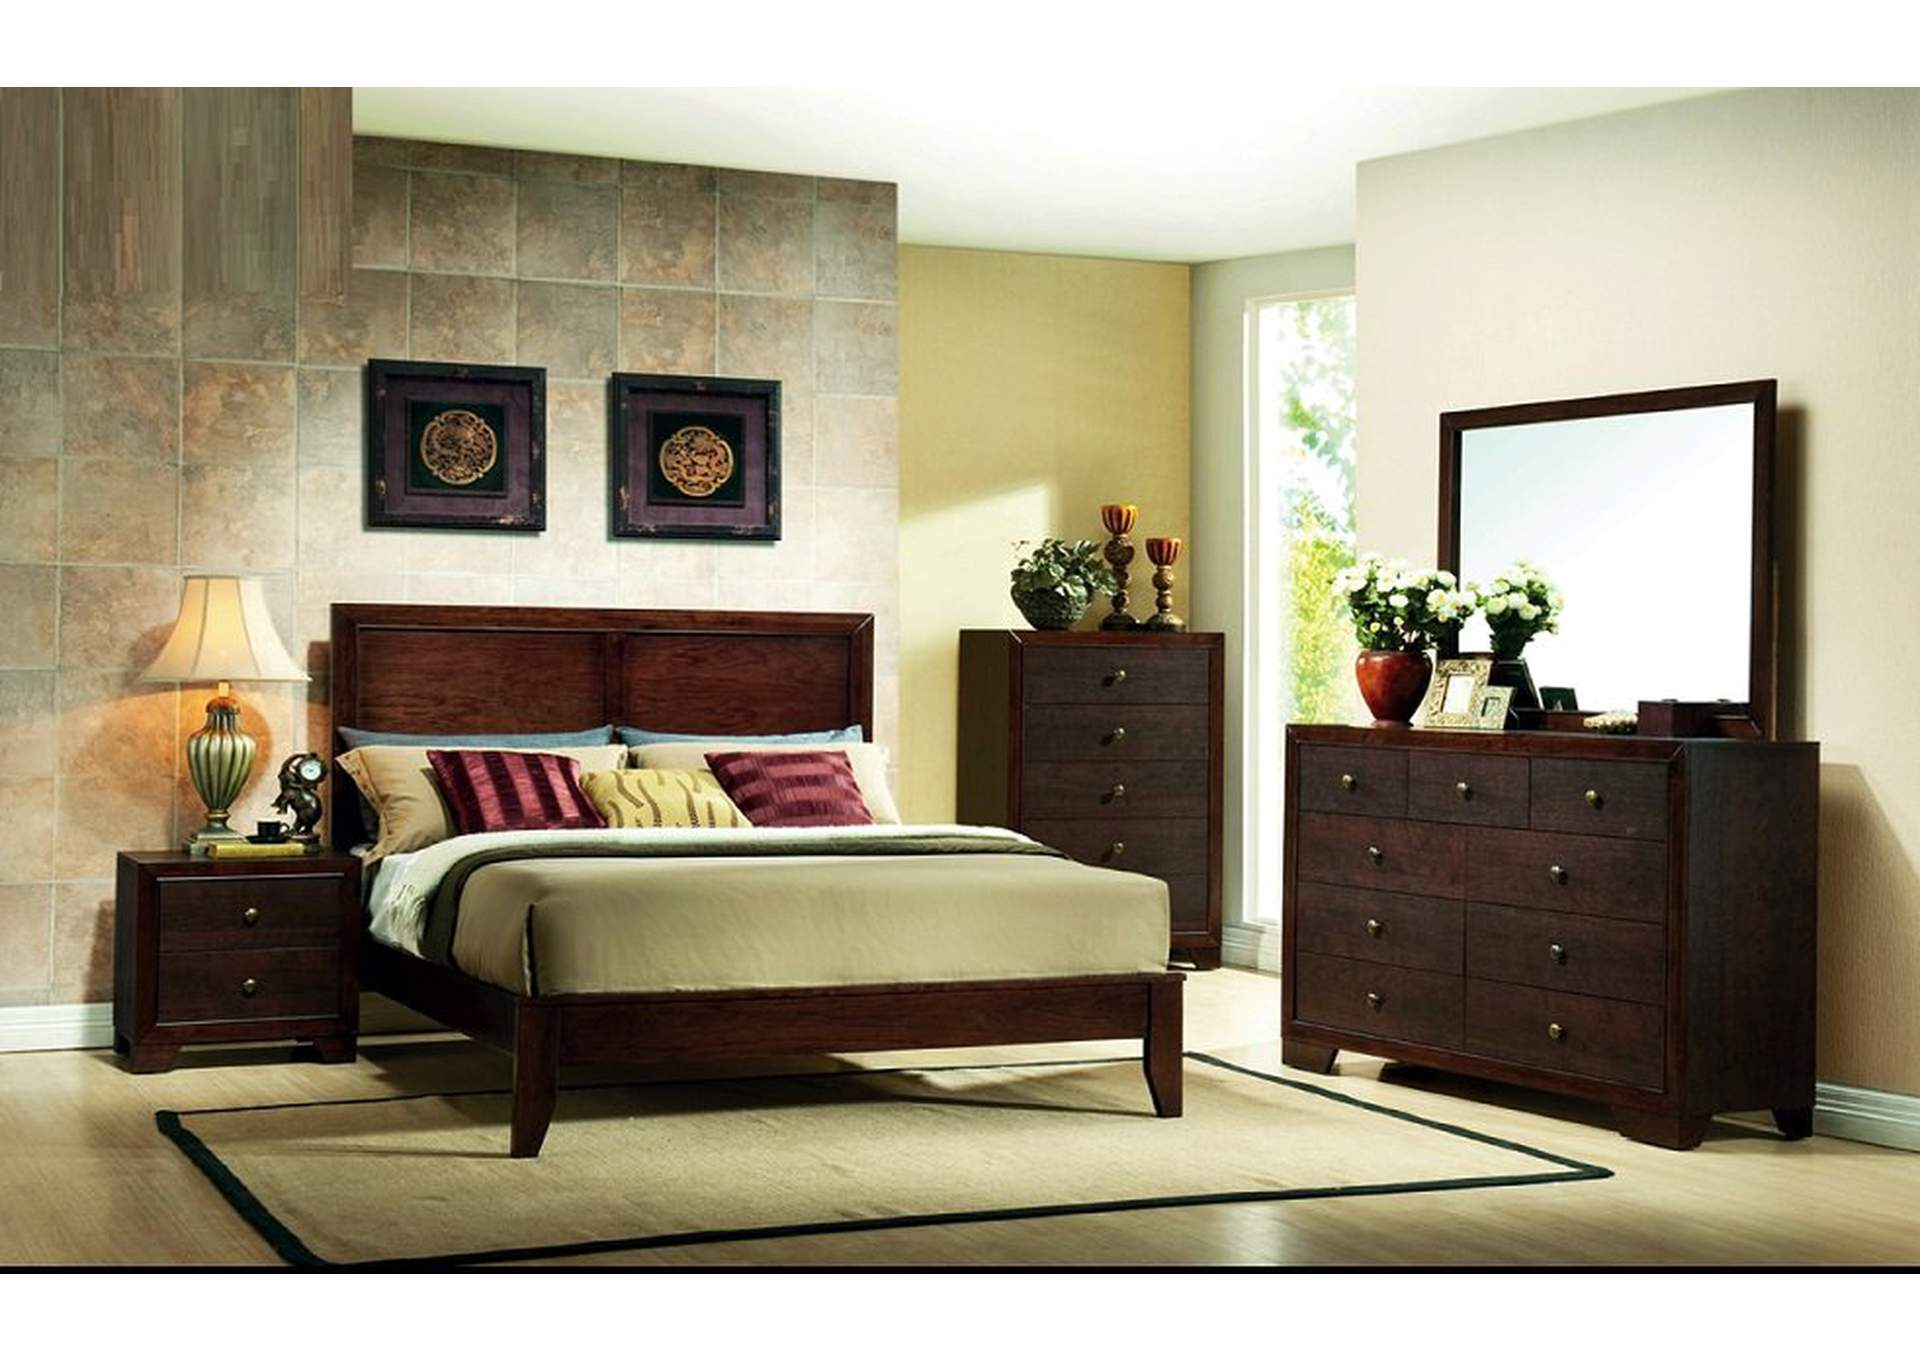 Brown Cherry Queen Bed,Furniture World Distributors